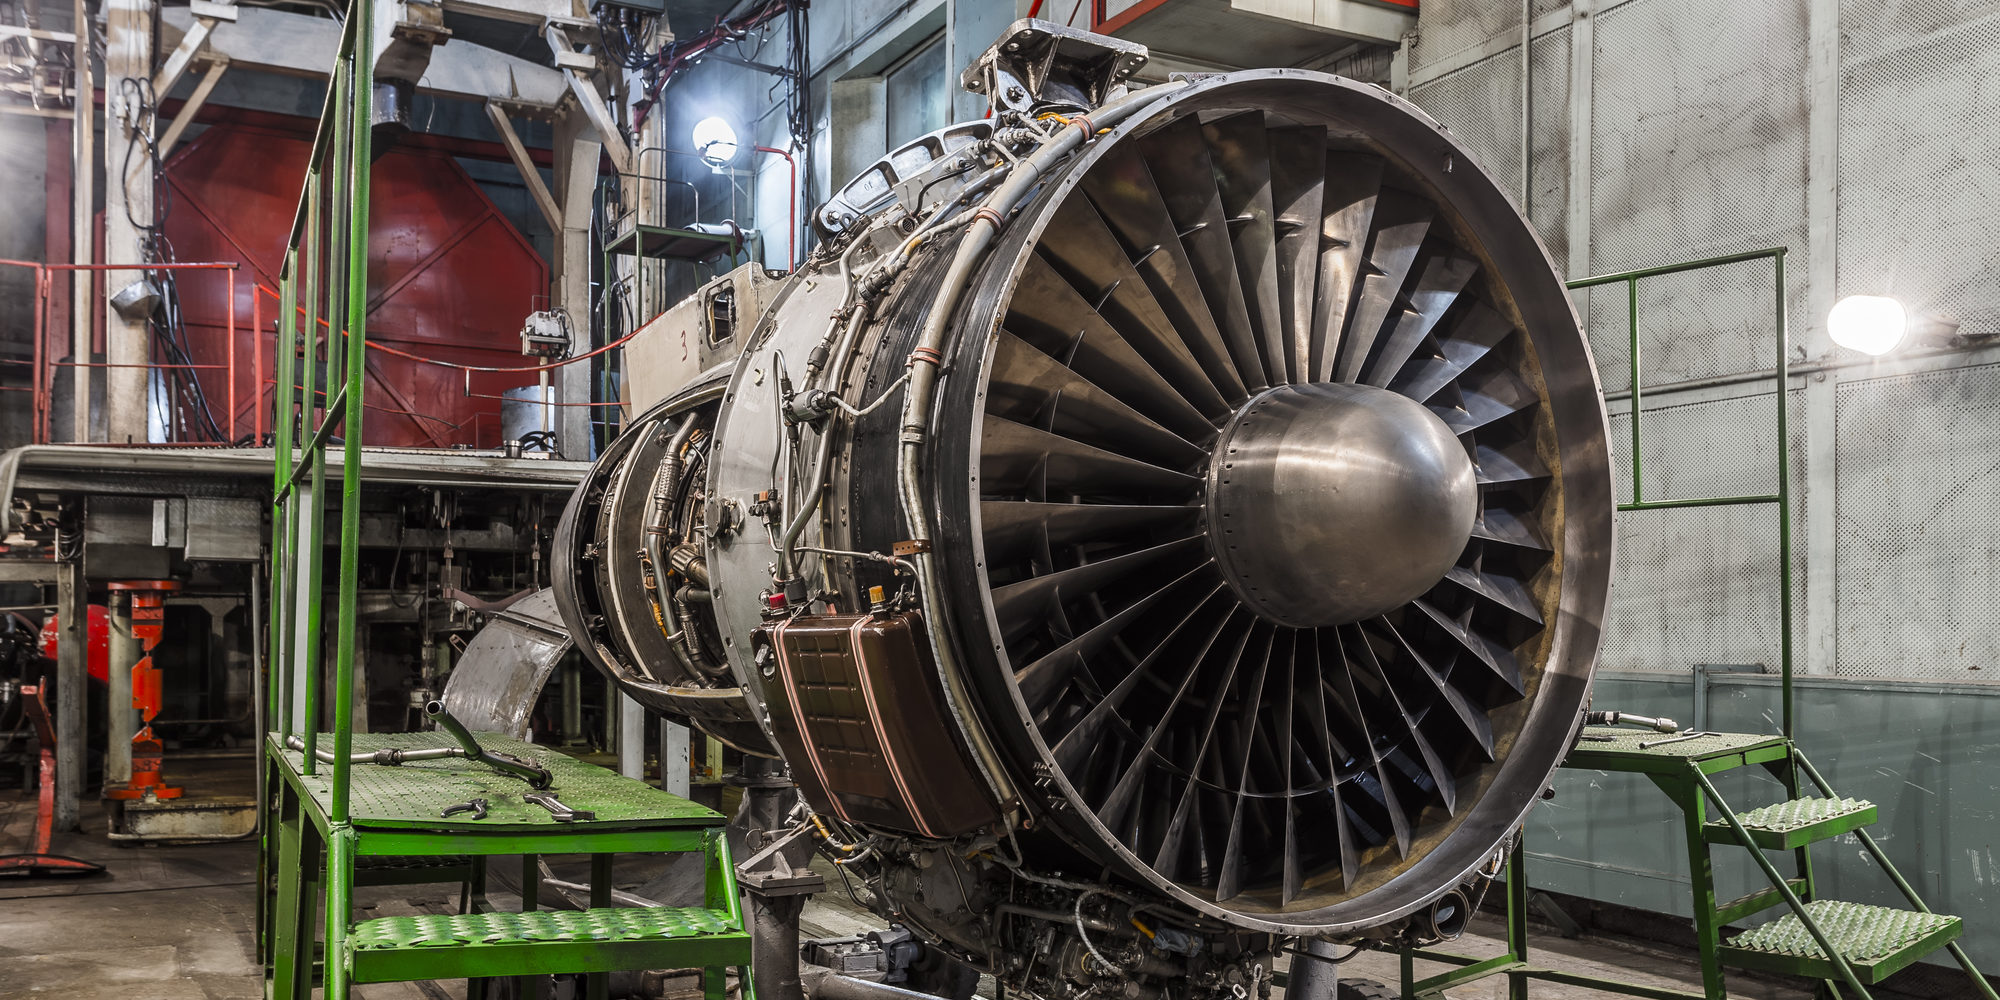 Airplane gas turbine engine detail in aviation hangar. Plane rotor under heavy maintenance.